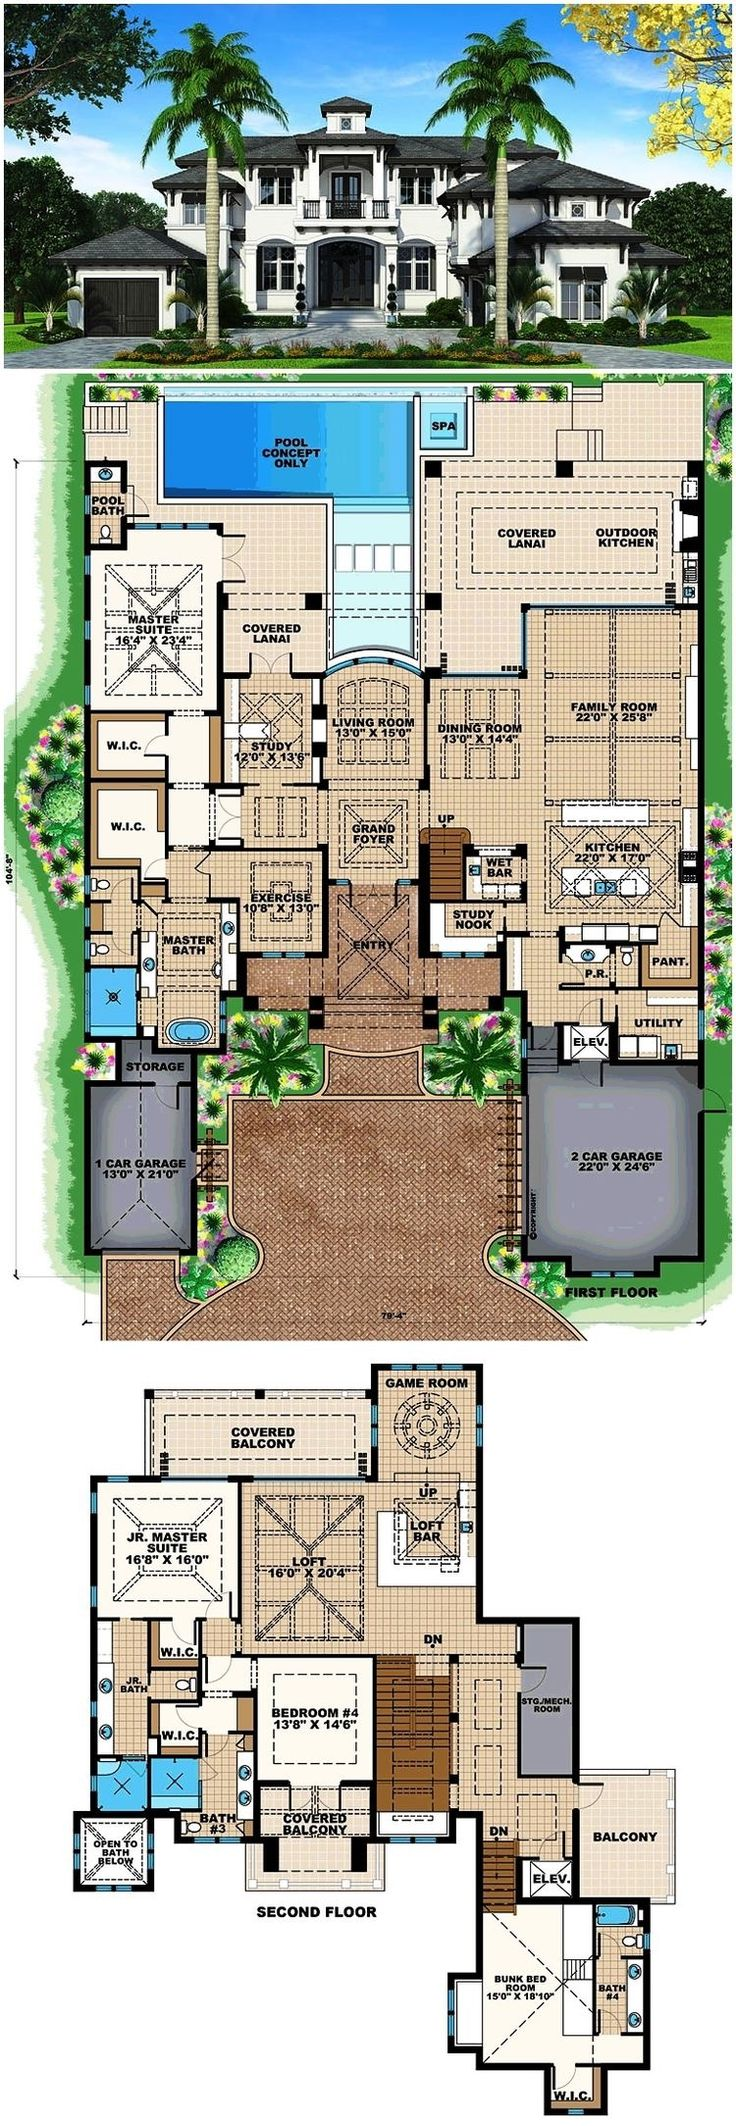 6707 House Plan 75954 I absolutely love